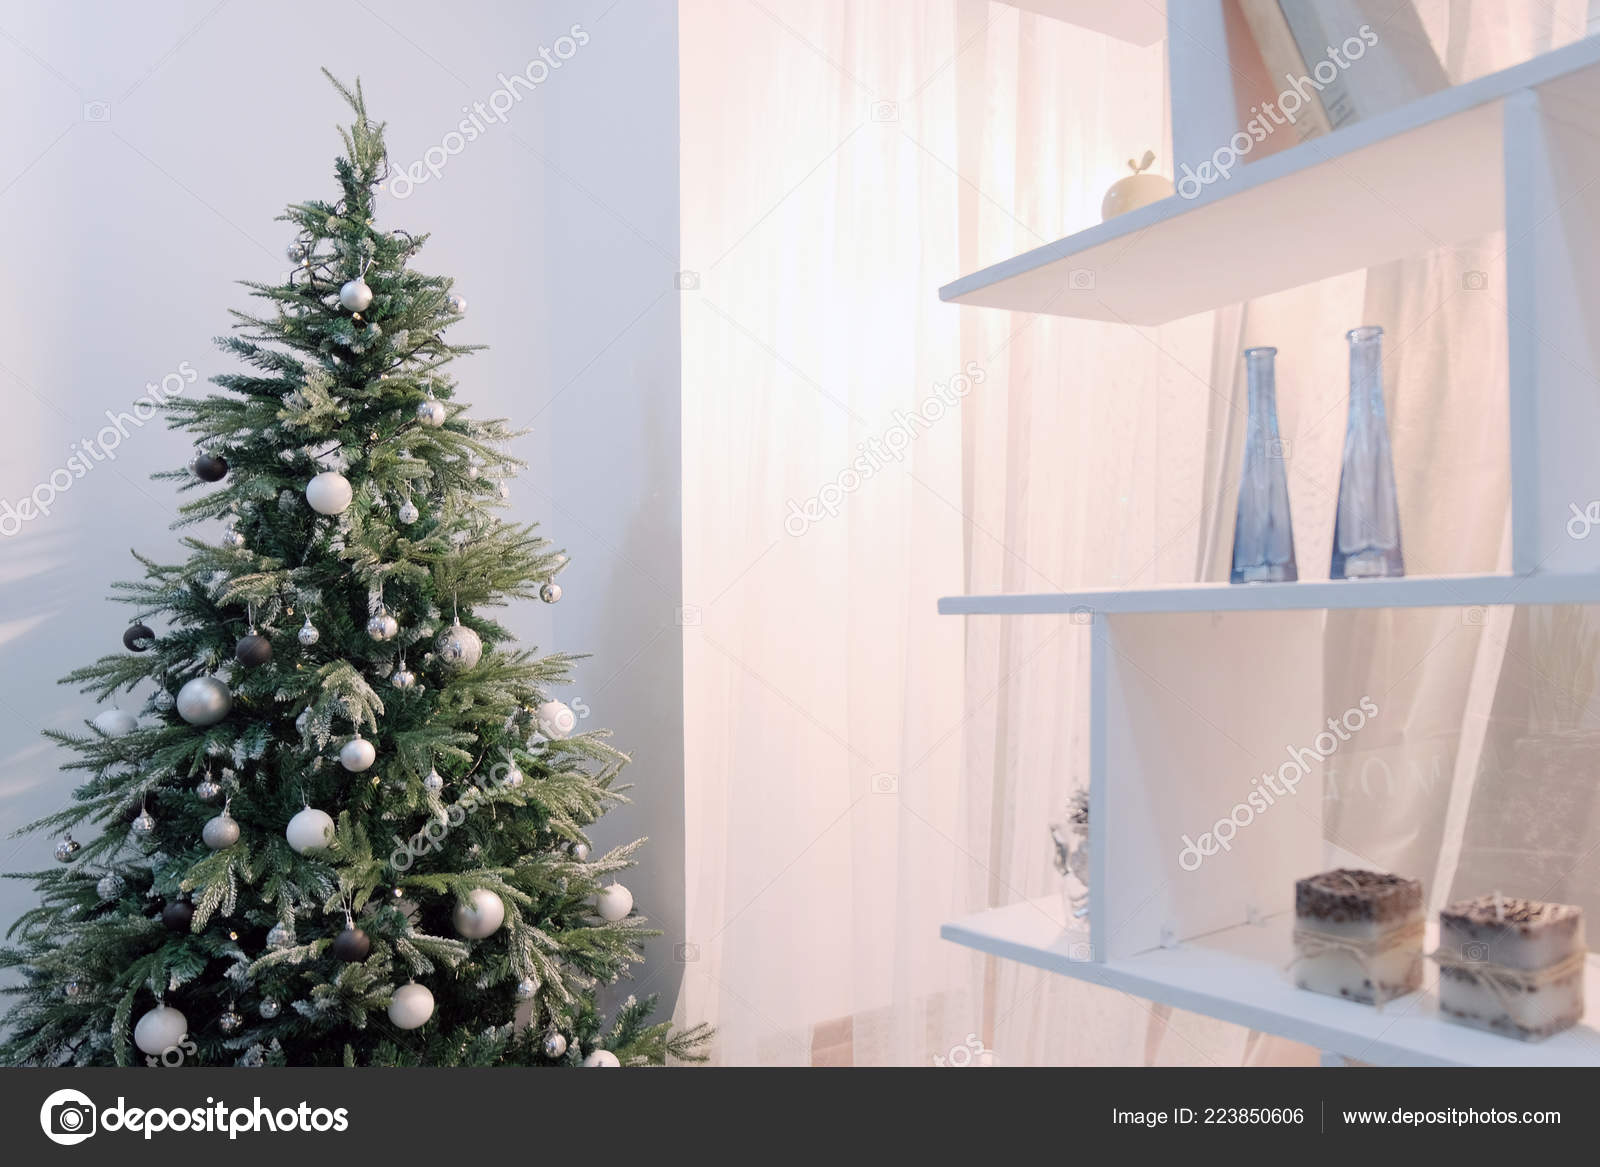 Theme Happy New Year Christmas Tree Stands Shelf Background White Stock Photo C Romsvetnik 223850606